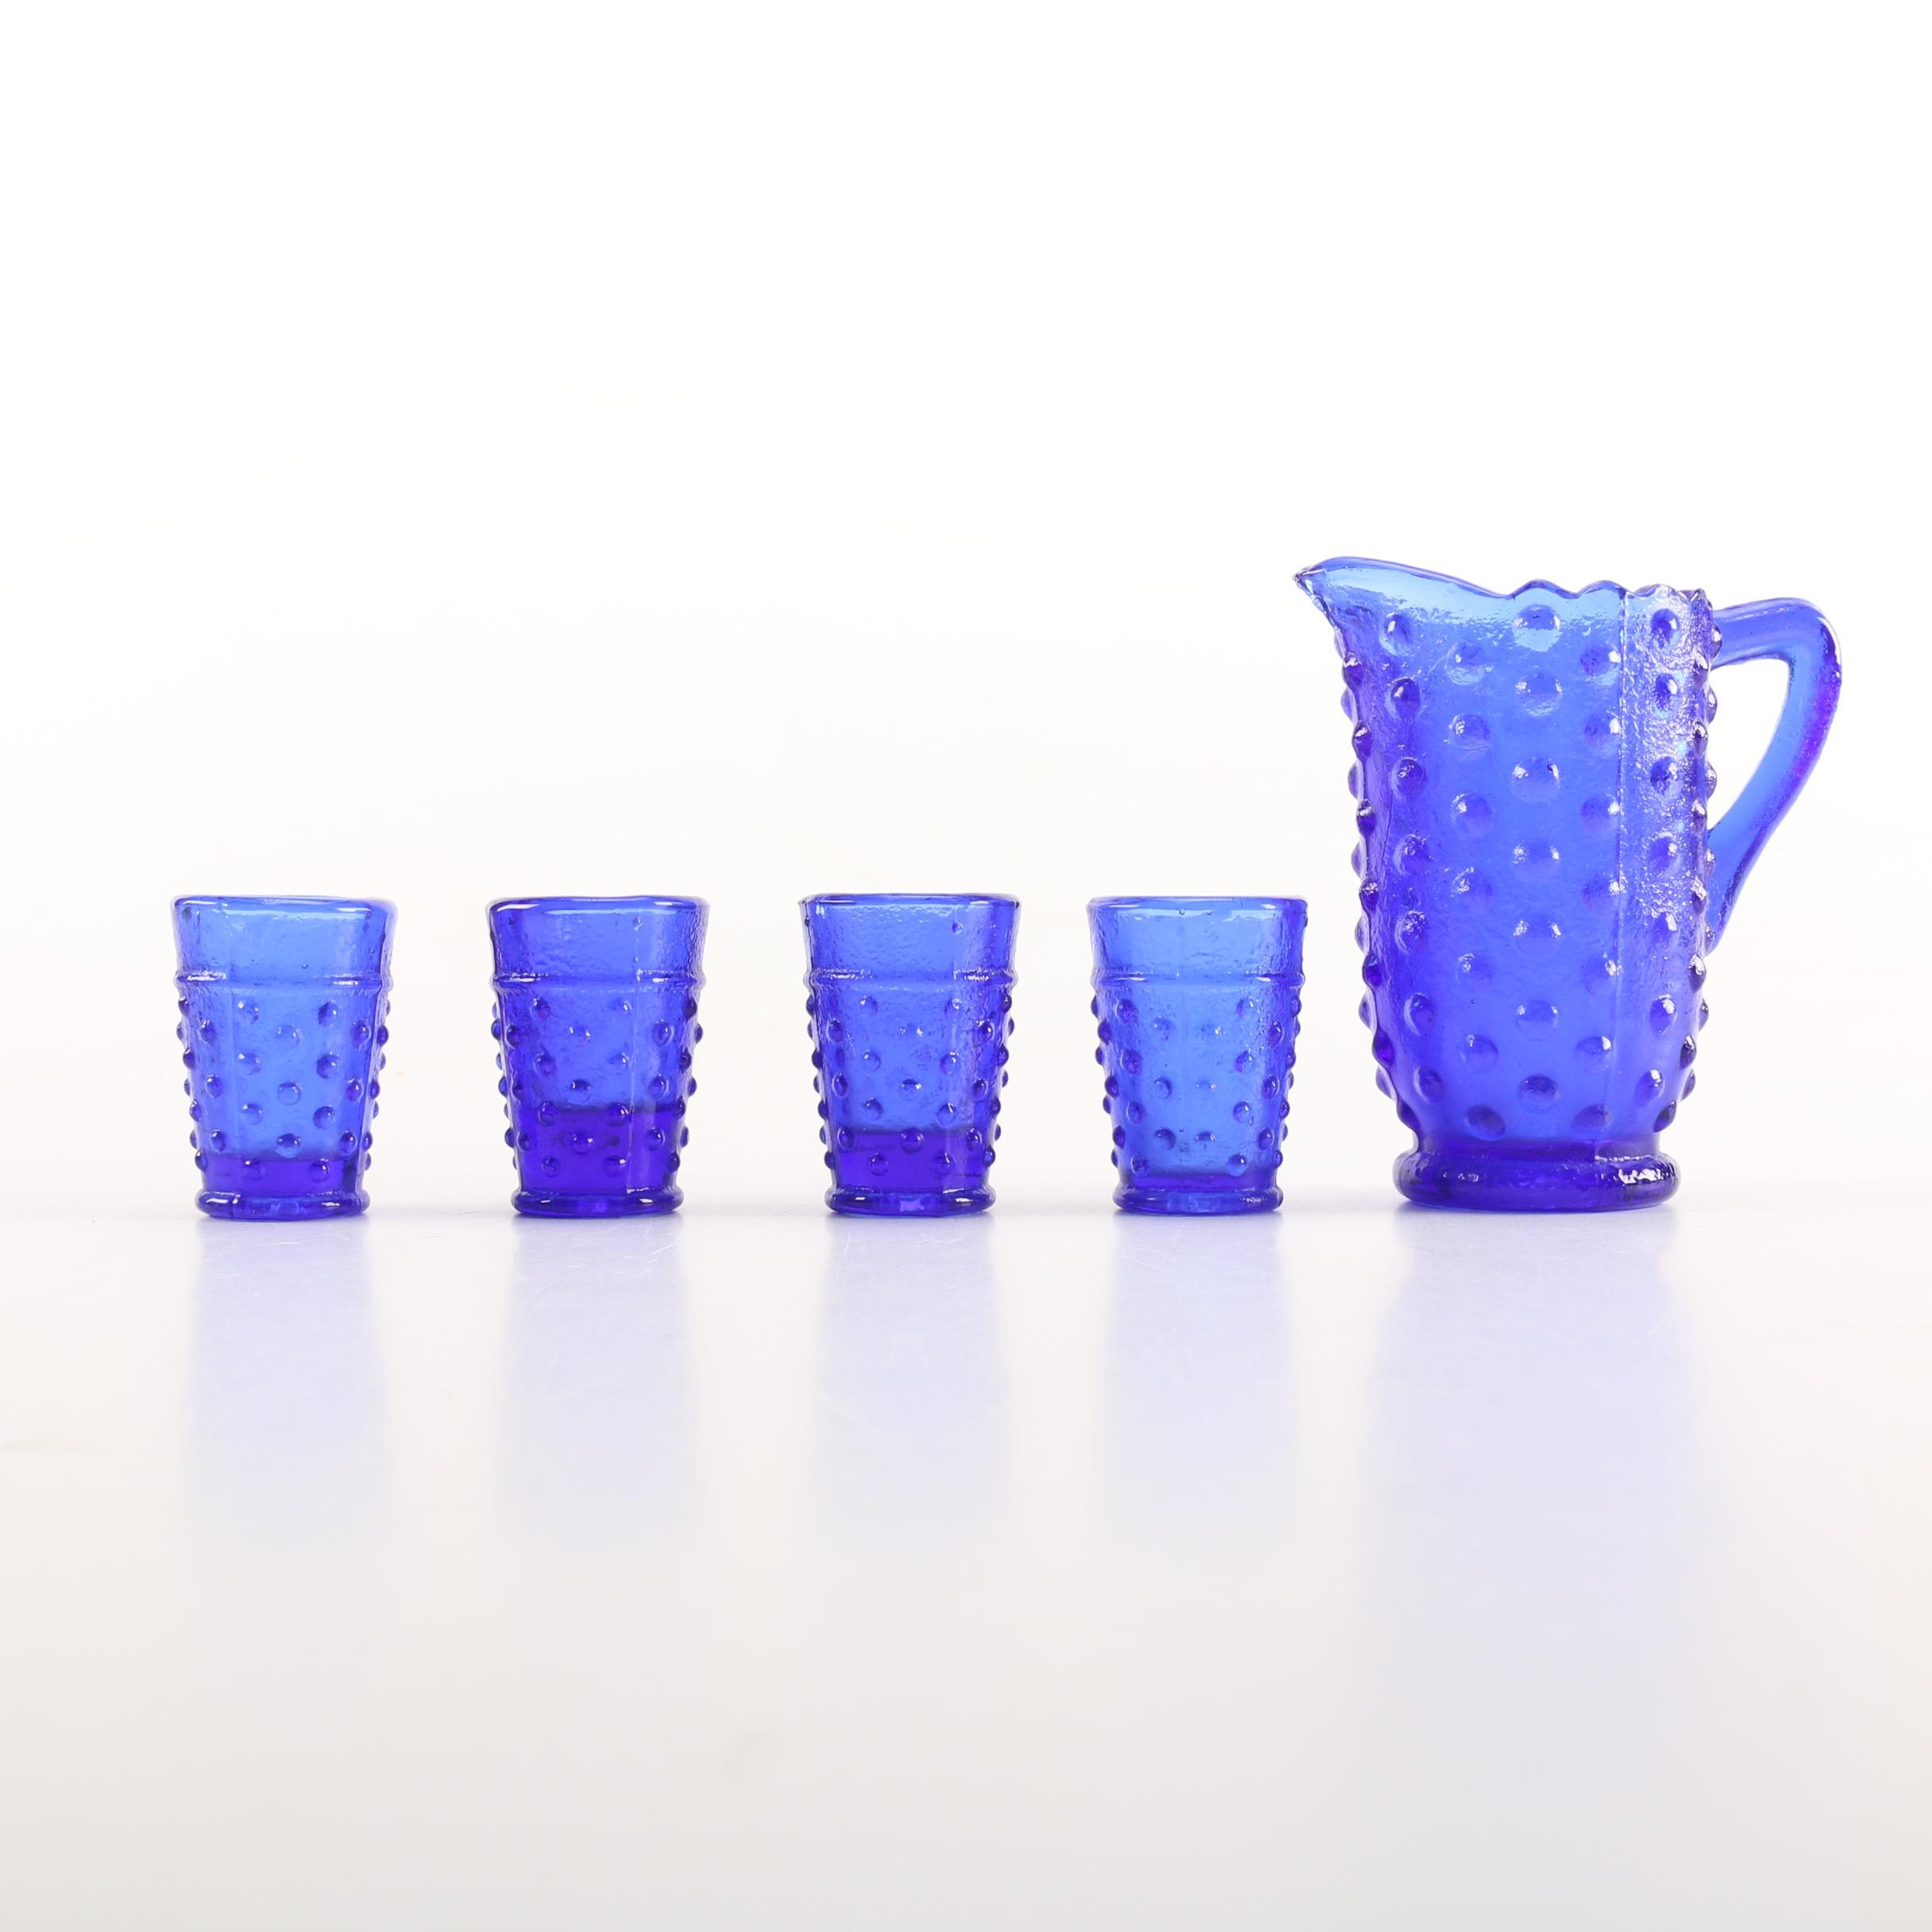 Blue Glass Juice Glasses and Pitcher